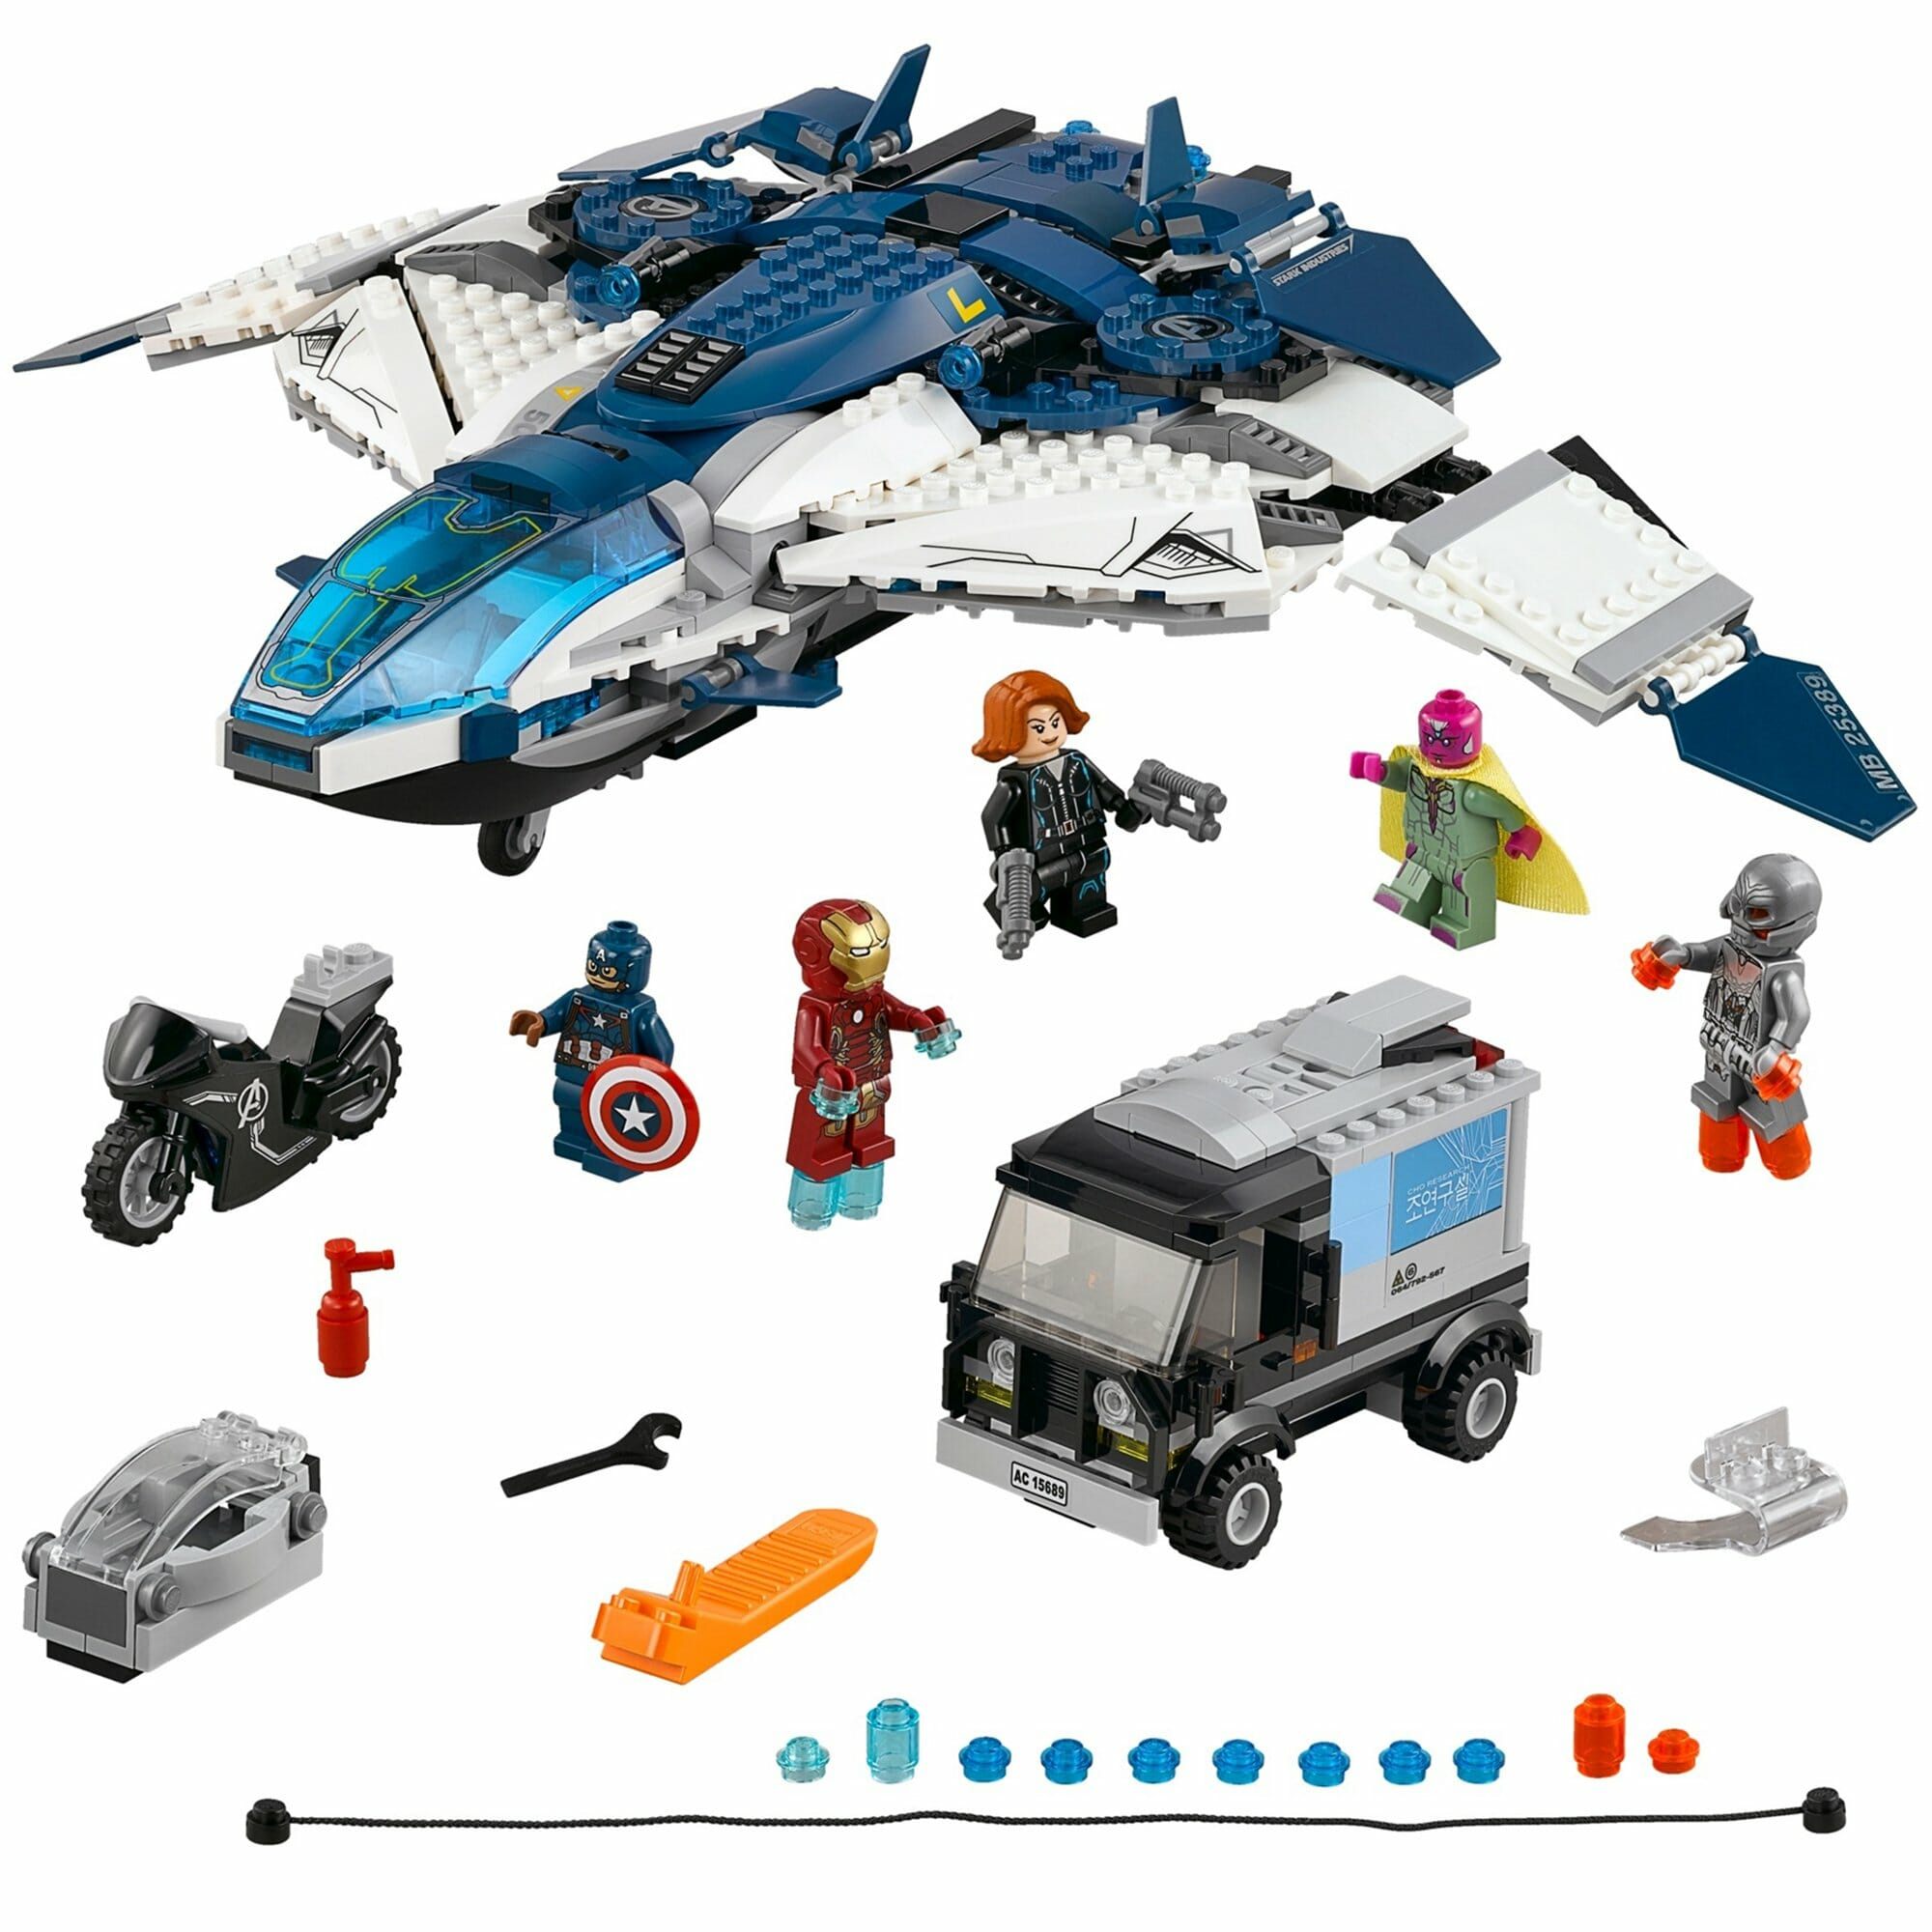 marvel lego sets : Avengers Quinjet City Chase